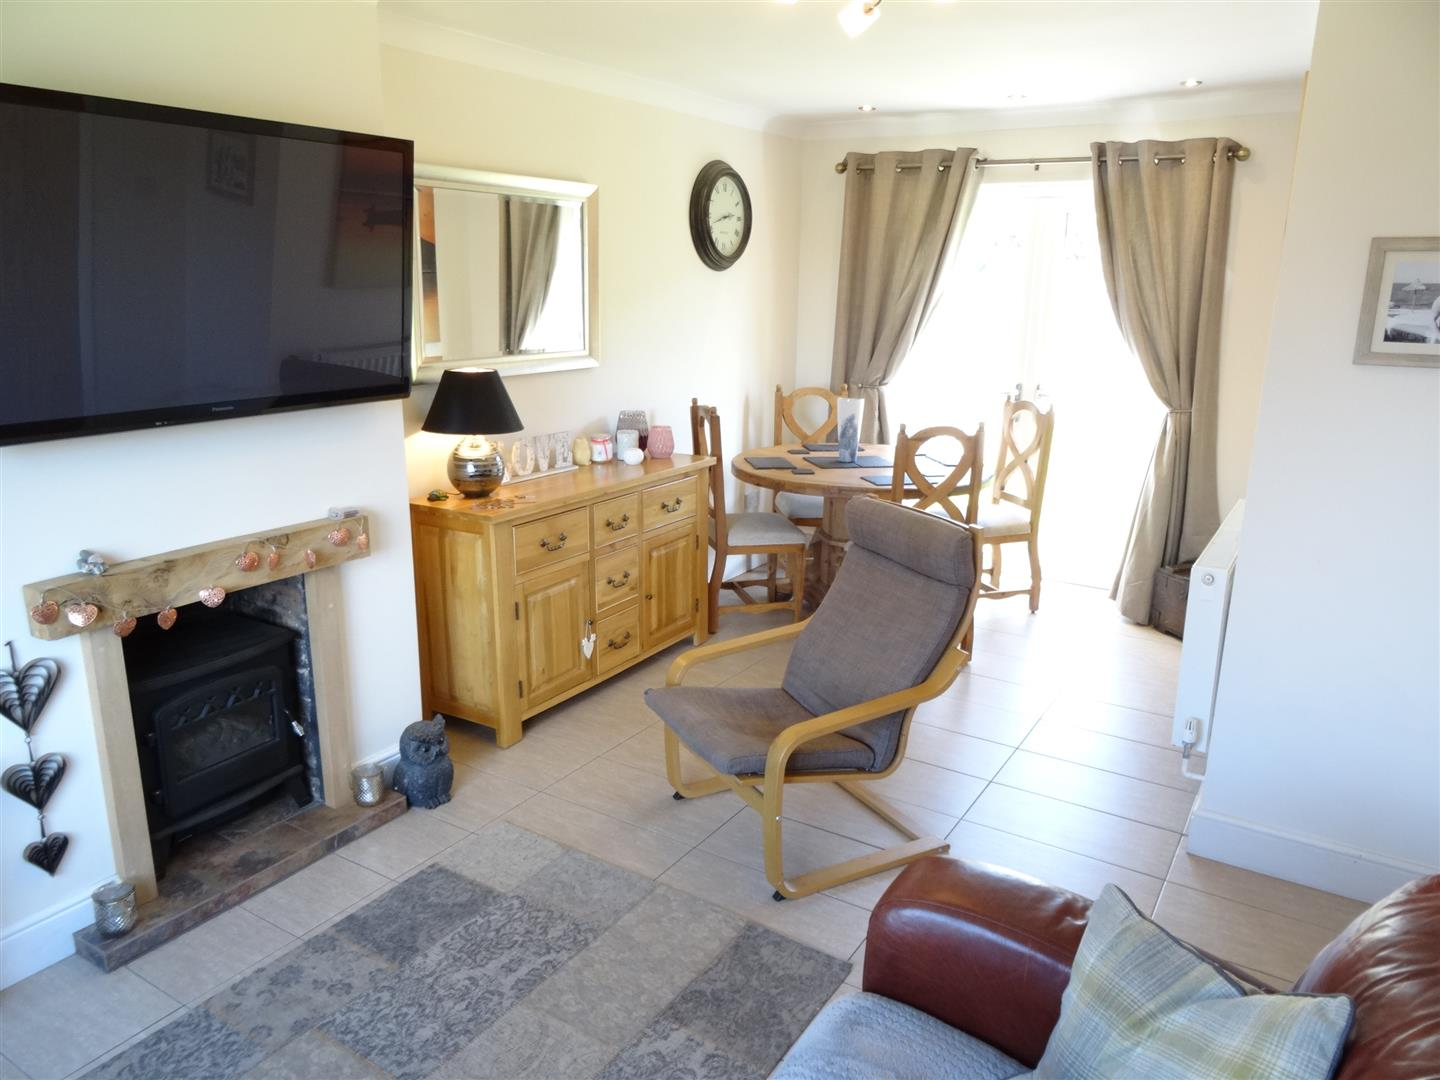 2 Bedrooms House - Semi-Detached For Sale 63 Mardale Road Carlisle